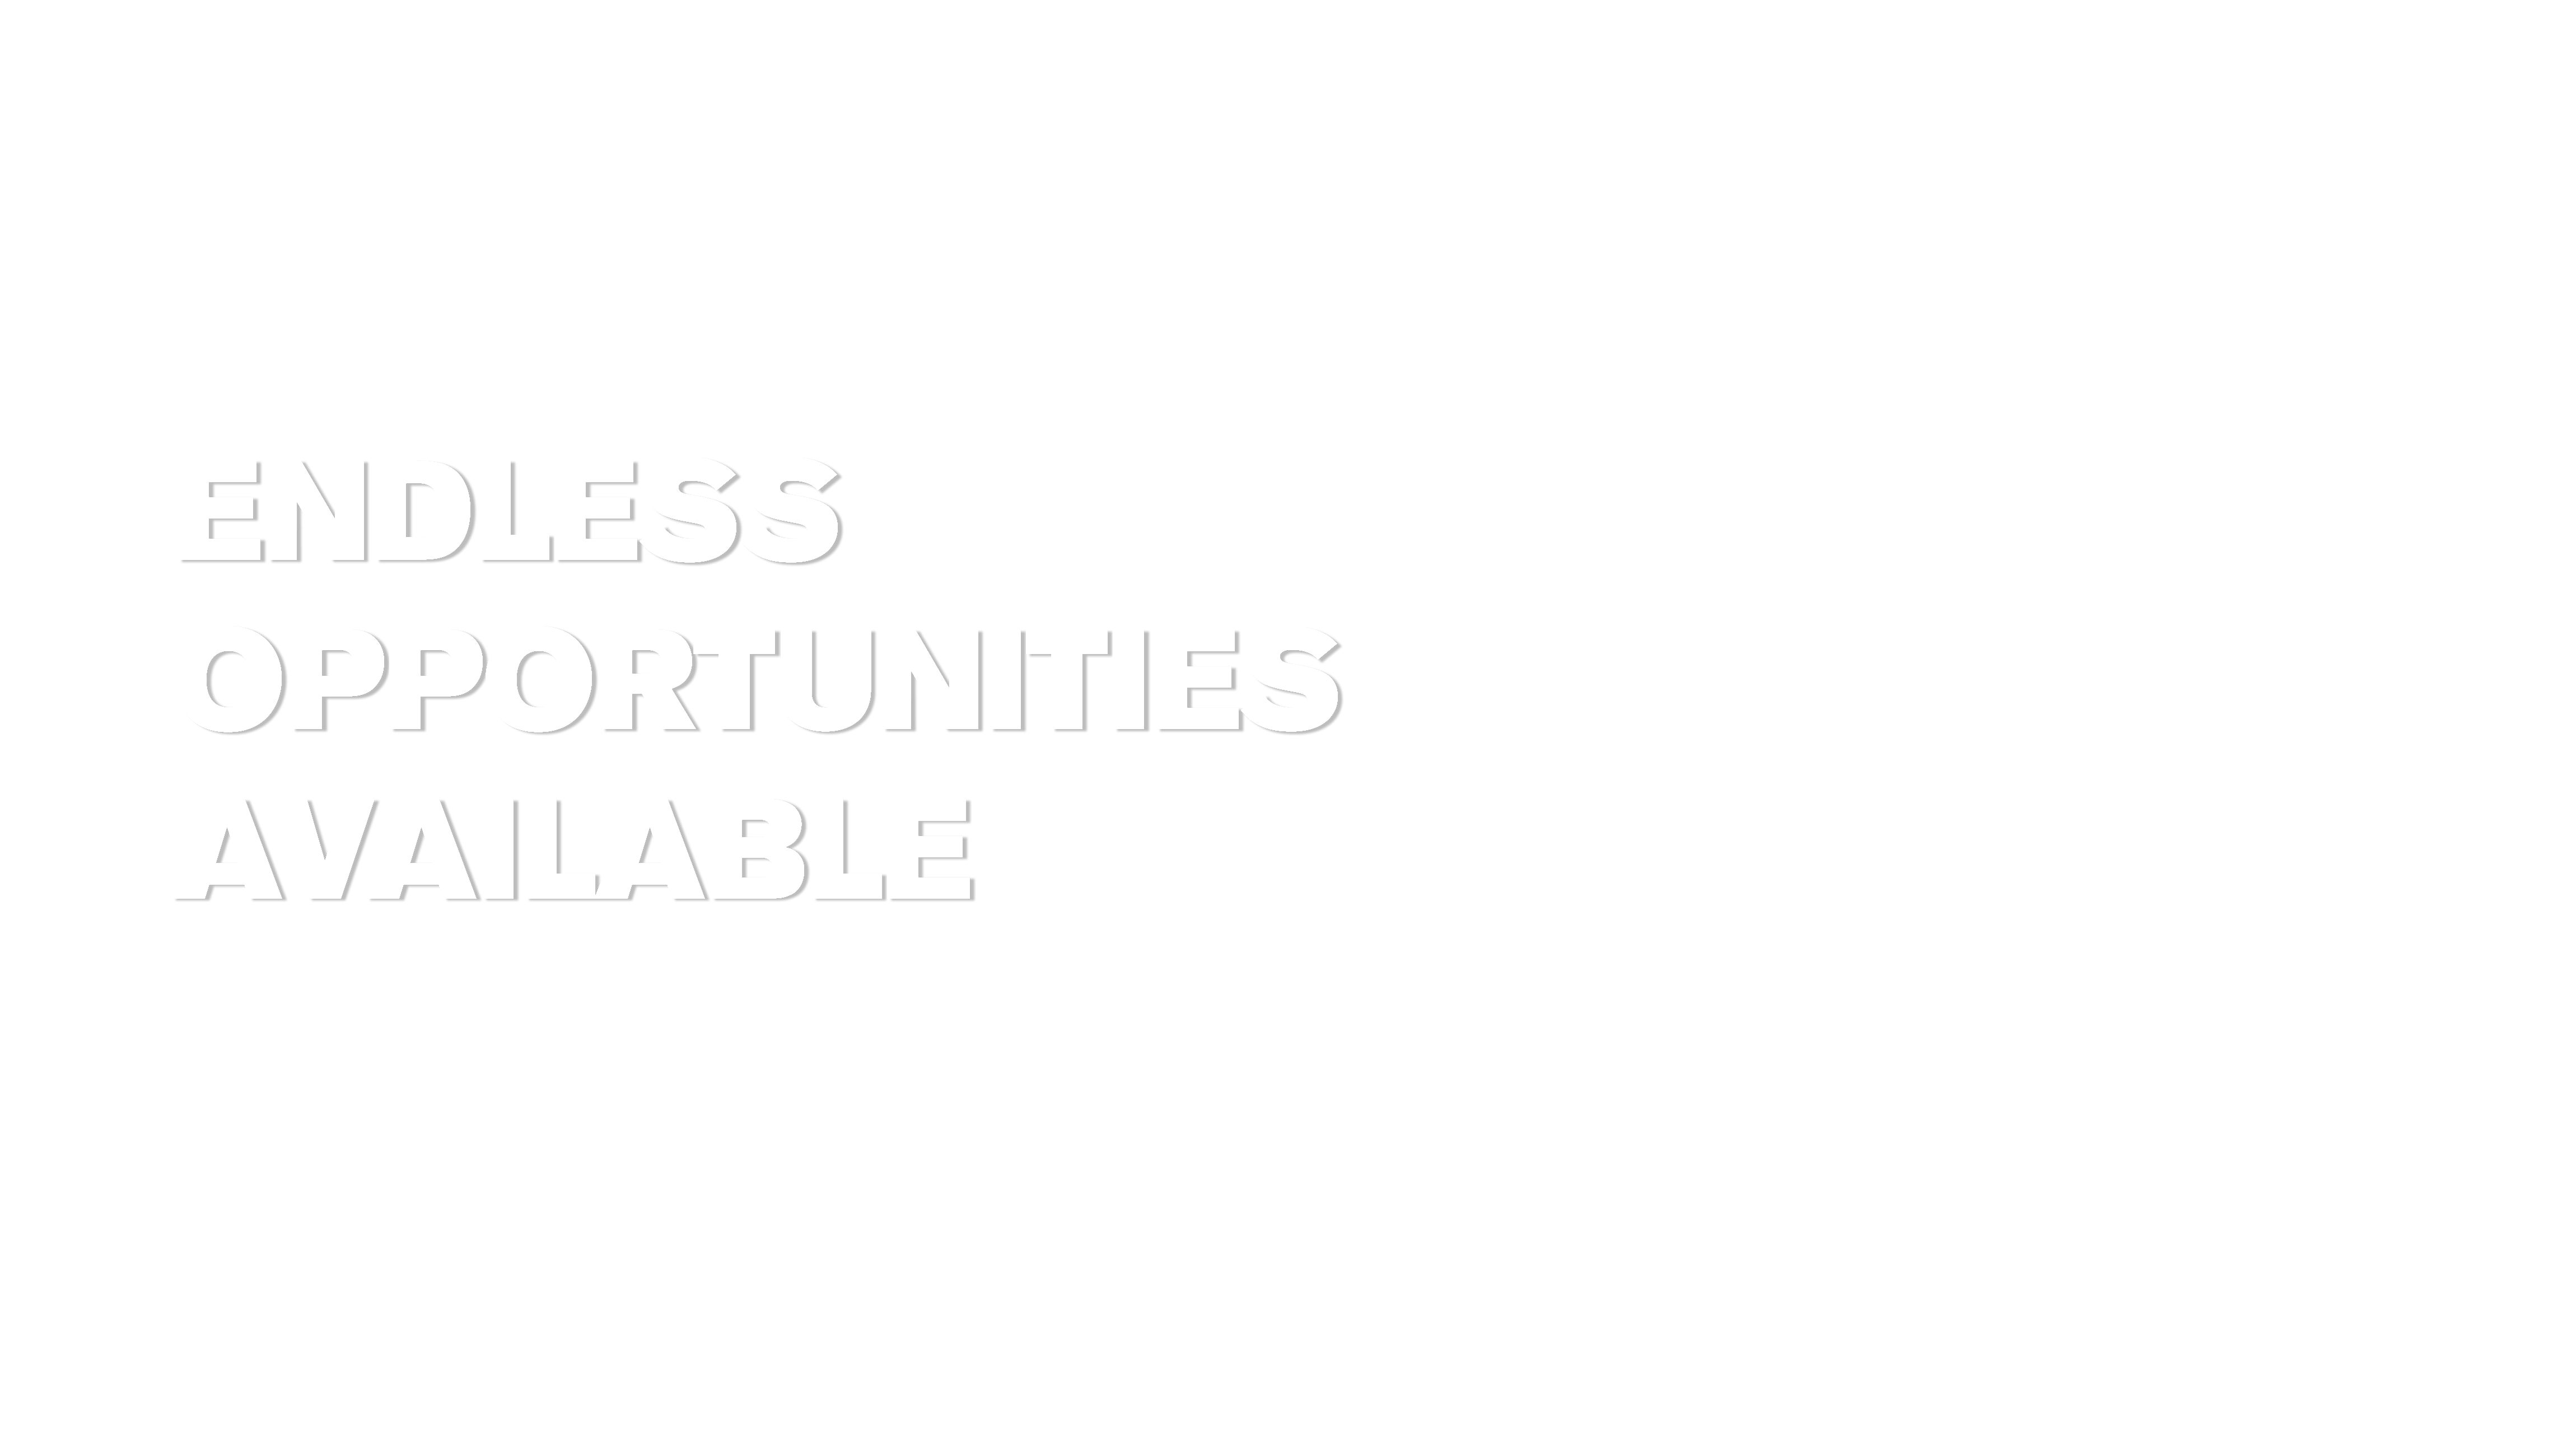 ENDLESS OPPORTUNITIES AVAILABLE